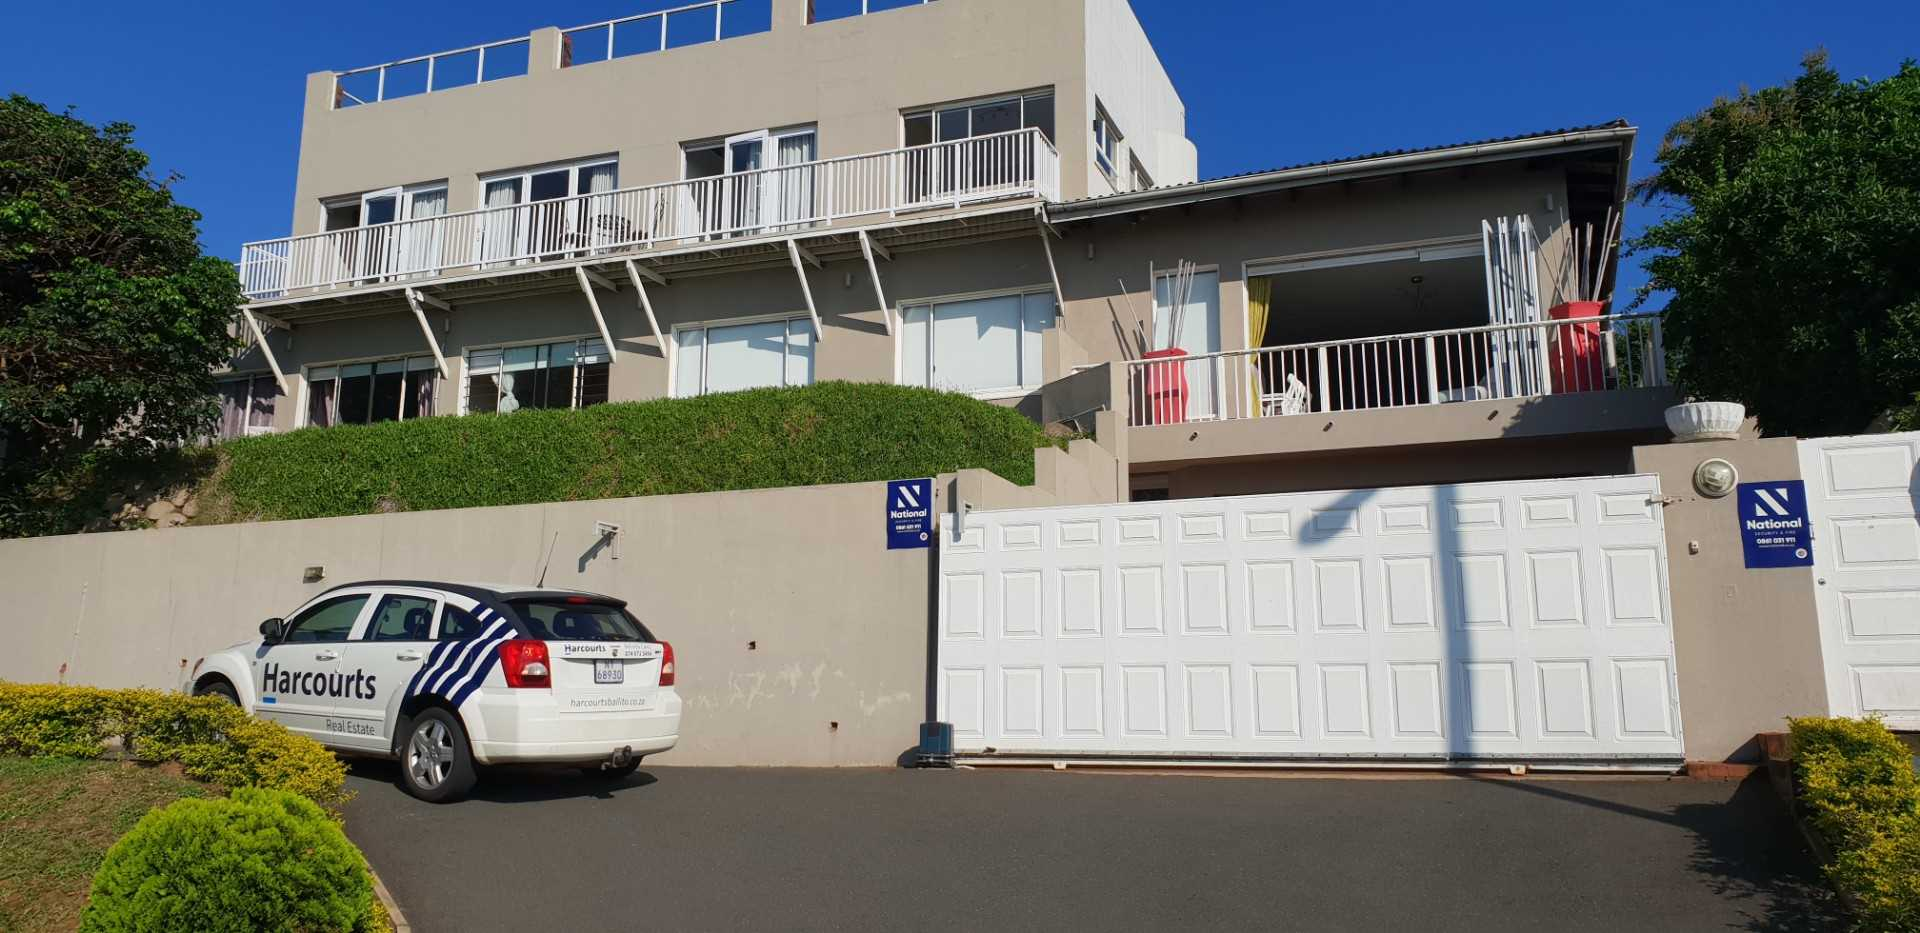 5 Bedroom house in Ballito for sale